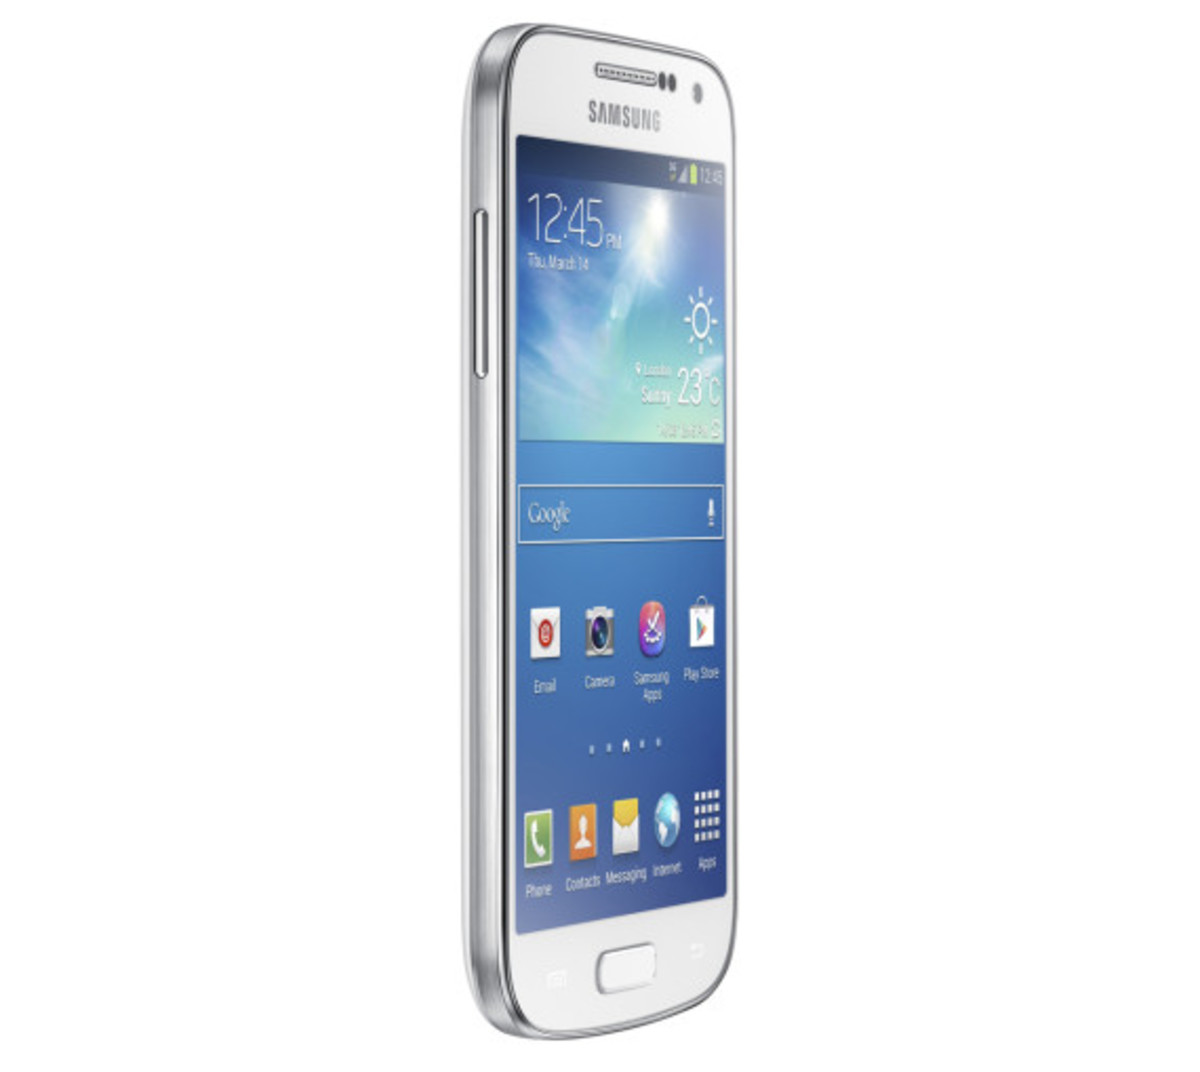 samsung-galaxy-s4-mini-unveiled-08